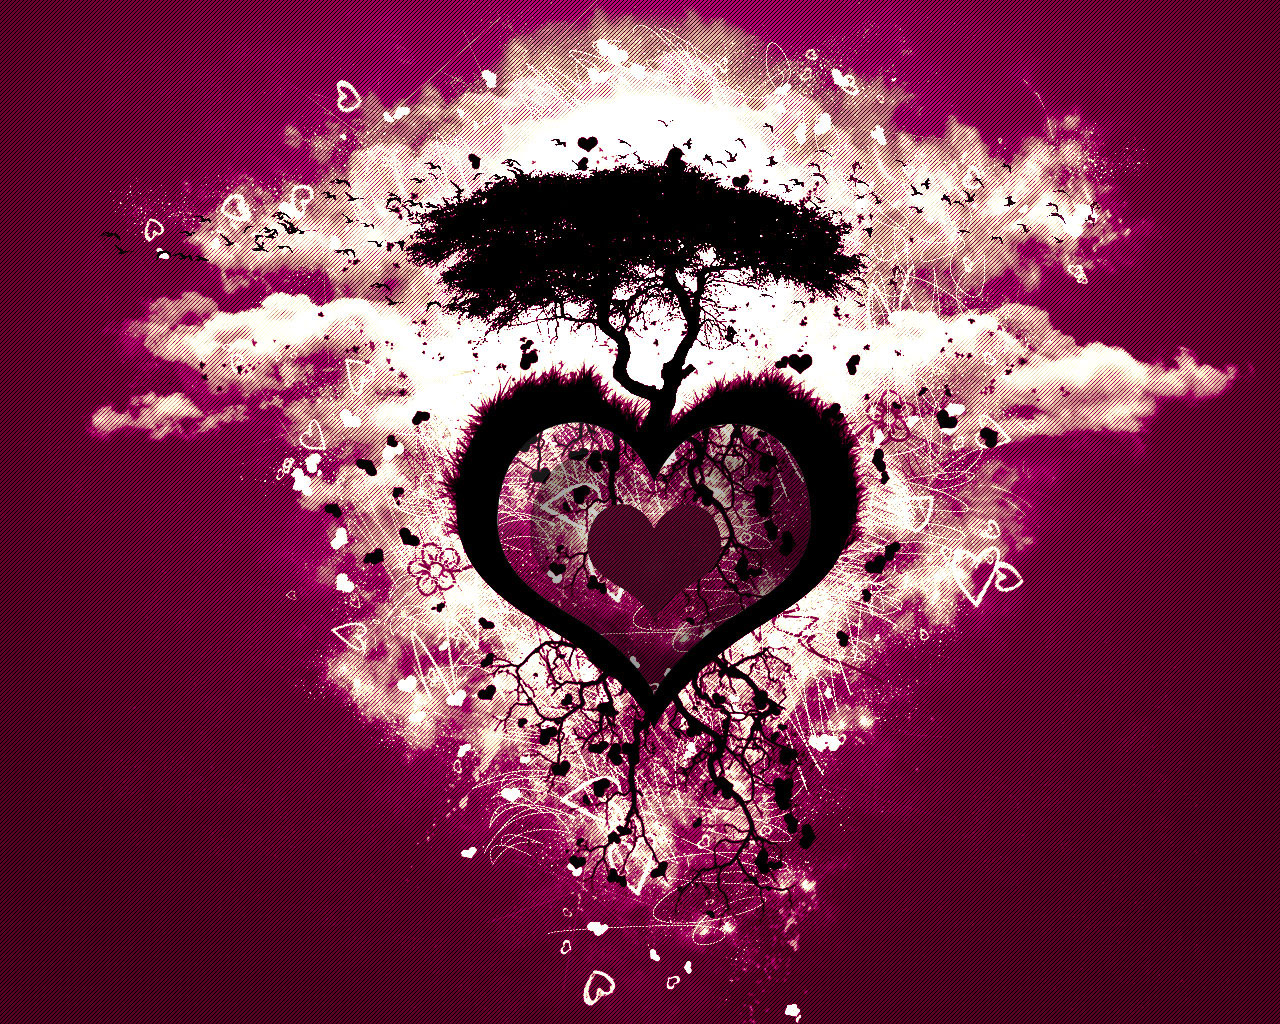 Heart Love Tree8288214955 - Heart Love Tree - tree, Love, Heart, about